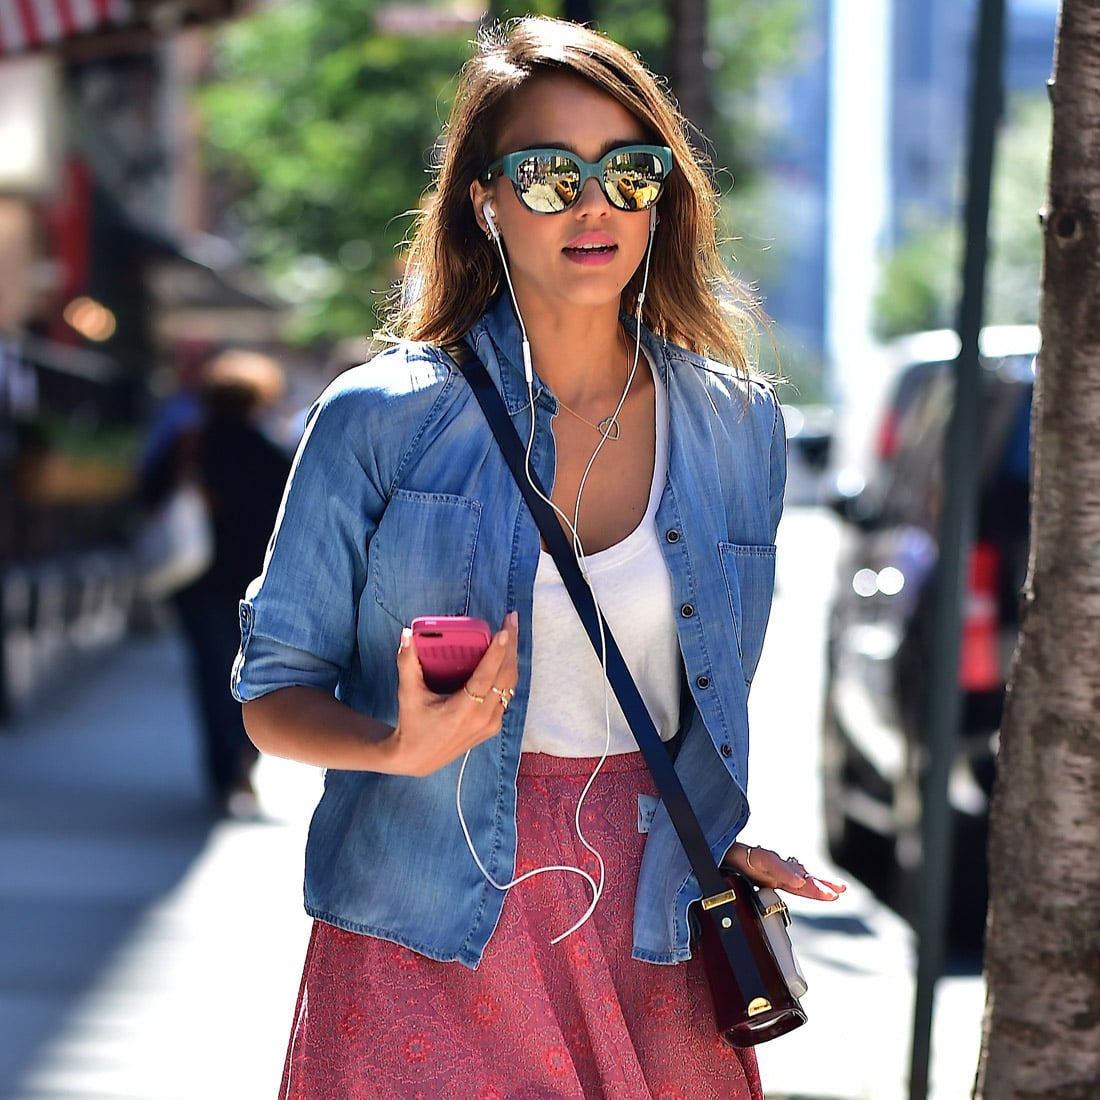 Best summer street style popsugar fashion - Best Summer Street Style Popsugar Fashion 3